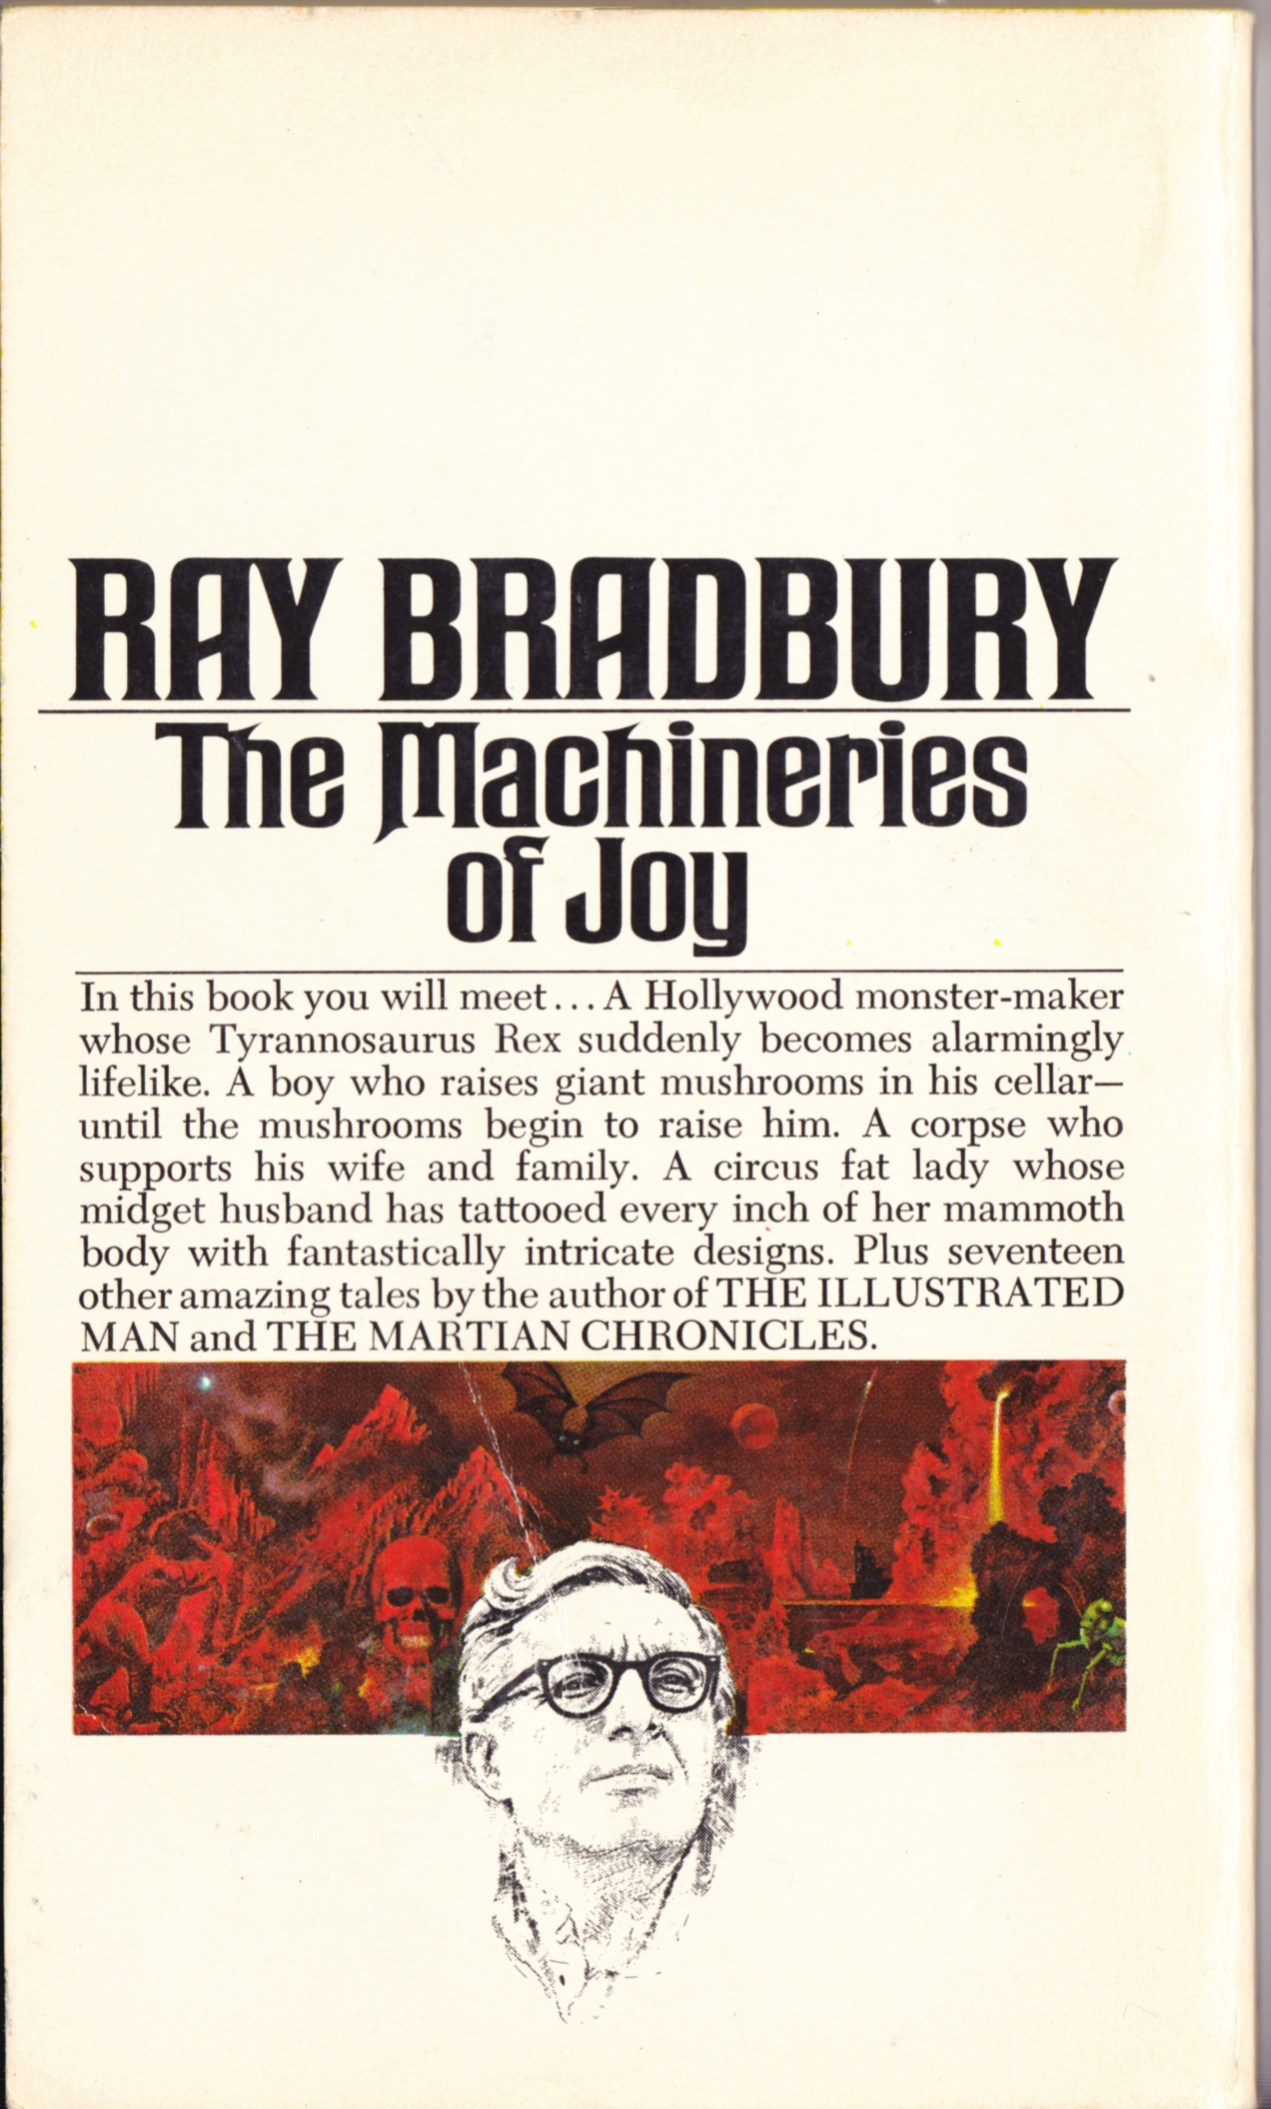 an analysis of dystopia in the works of ray bradbury For the purpose of this intertextual analysis focus will be there will come soft rains by ray bradbury as well as the star by esther claes works of prose and which take a dystopian literary style.